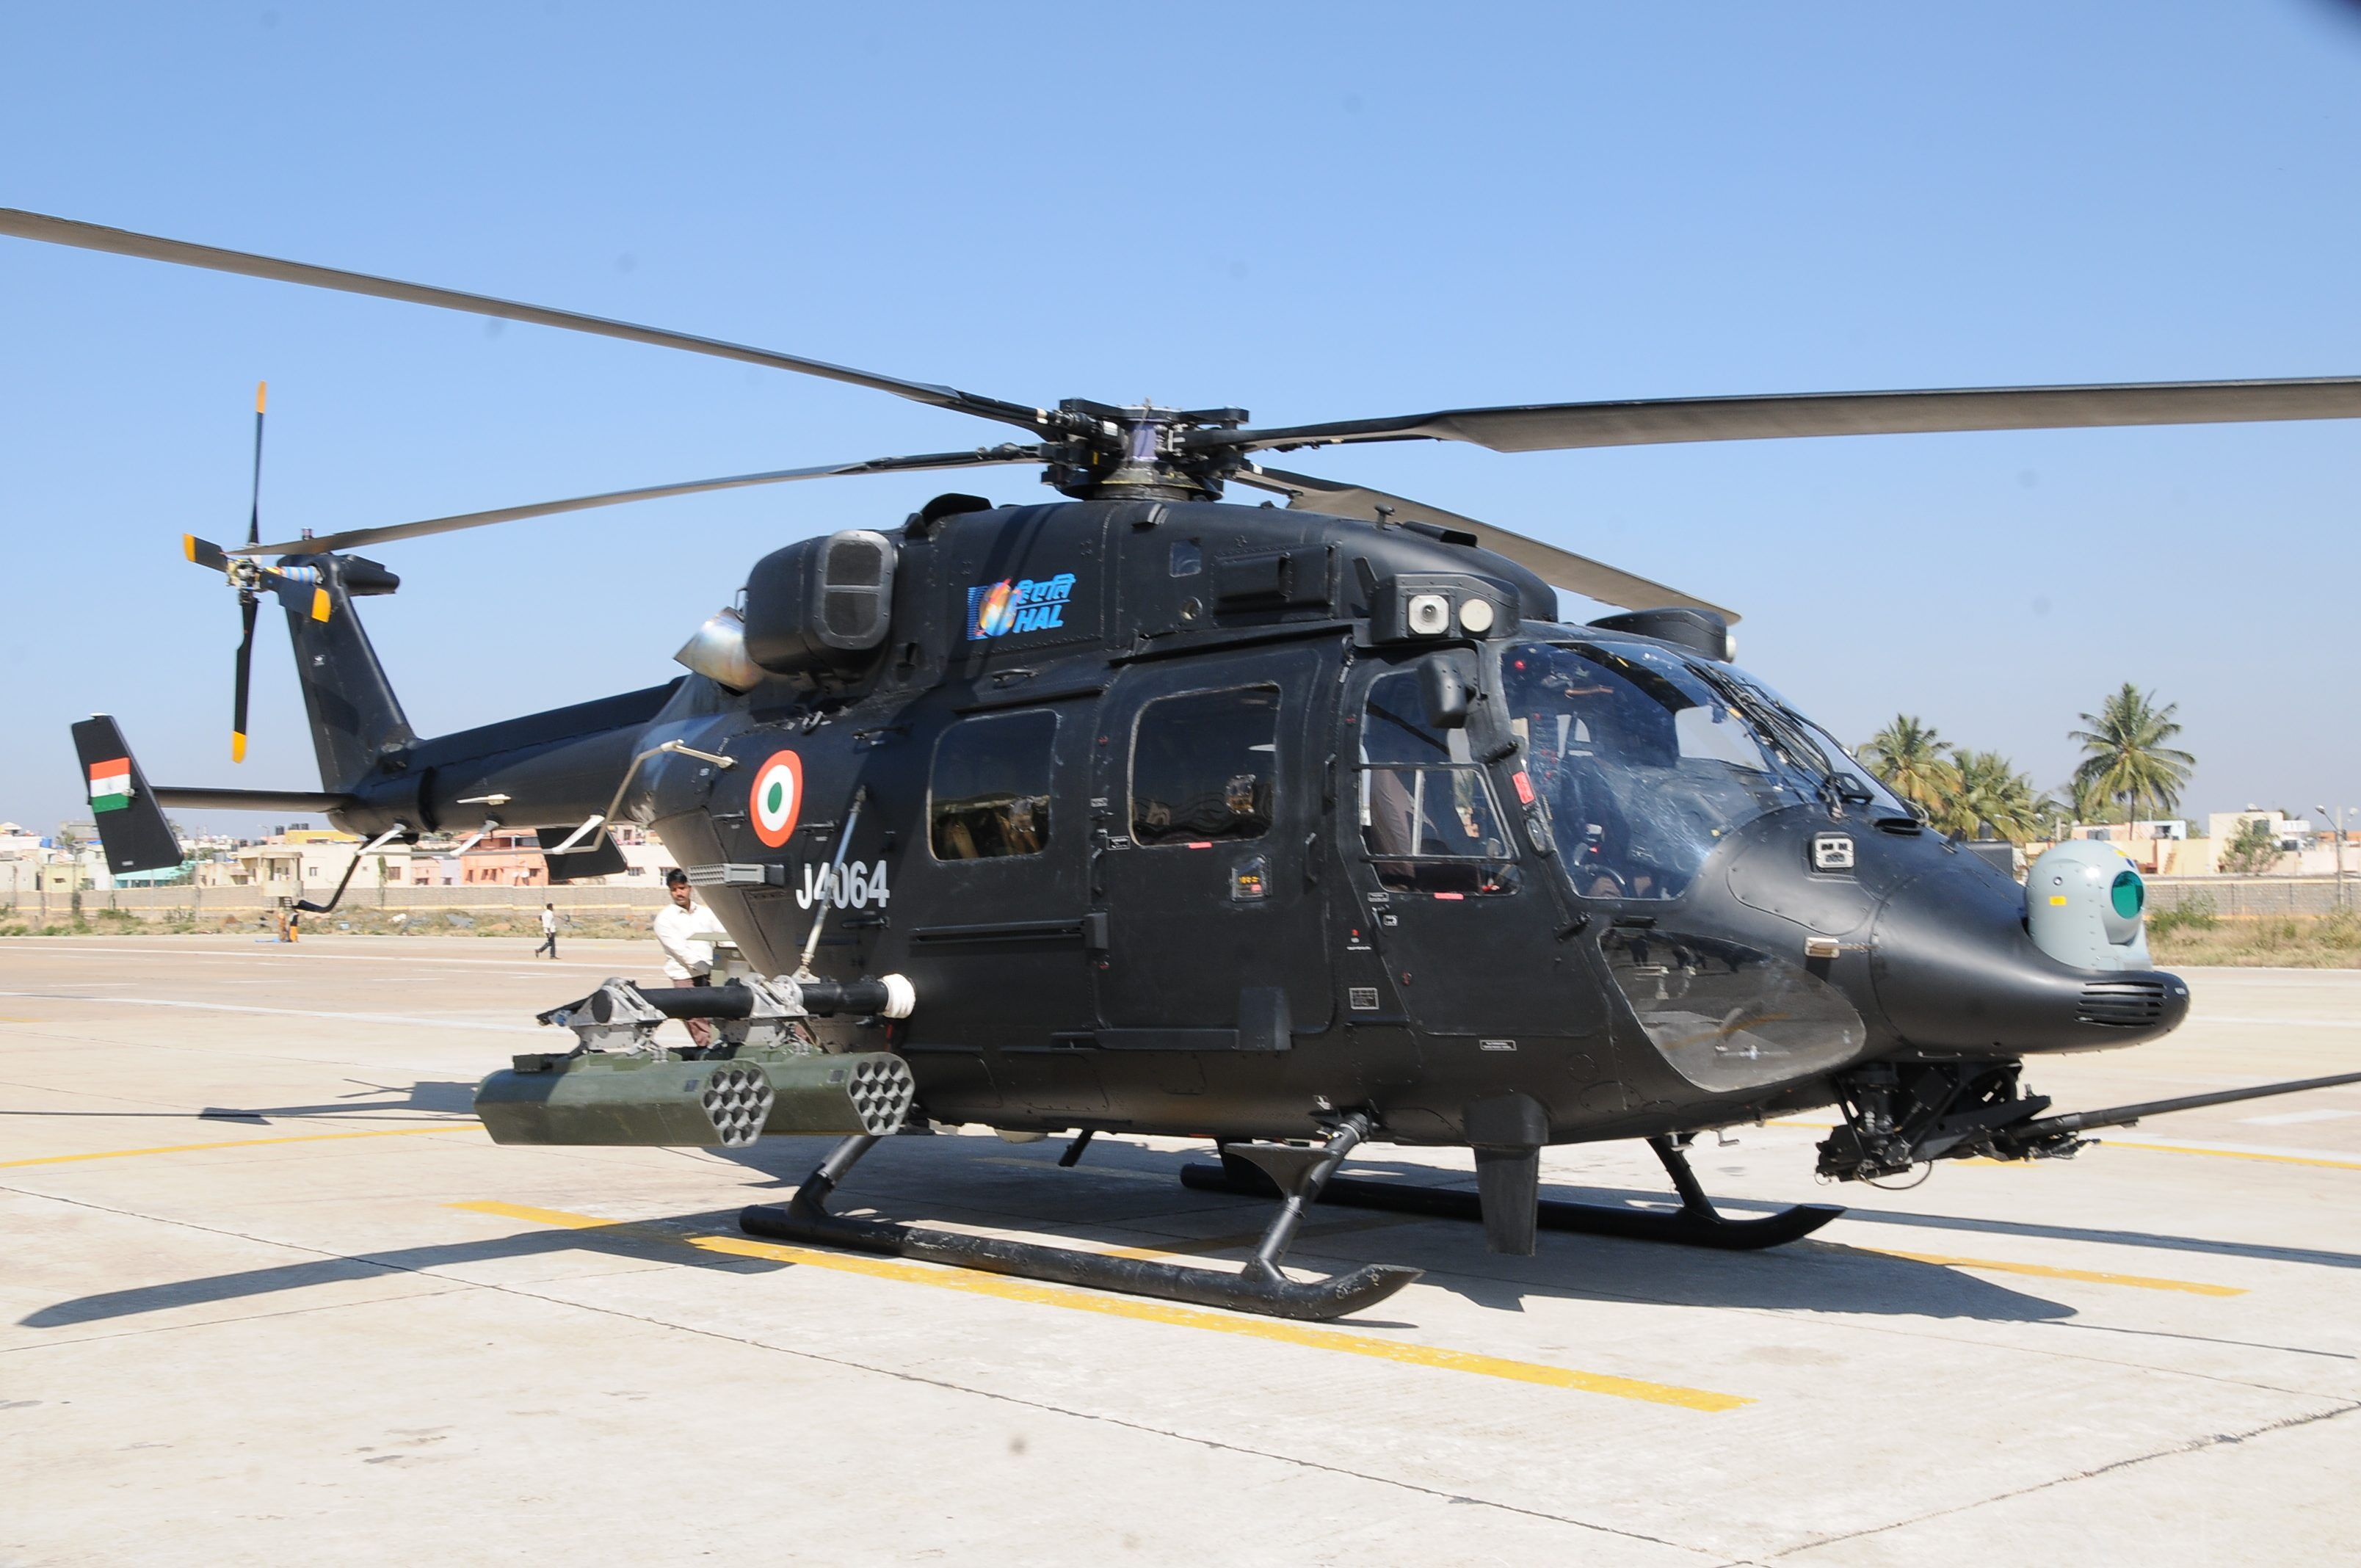 Hindustan Advanced Light Helicopter #7